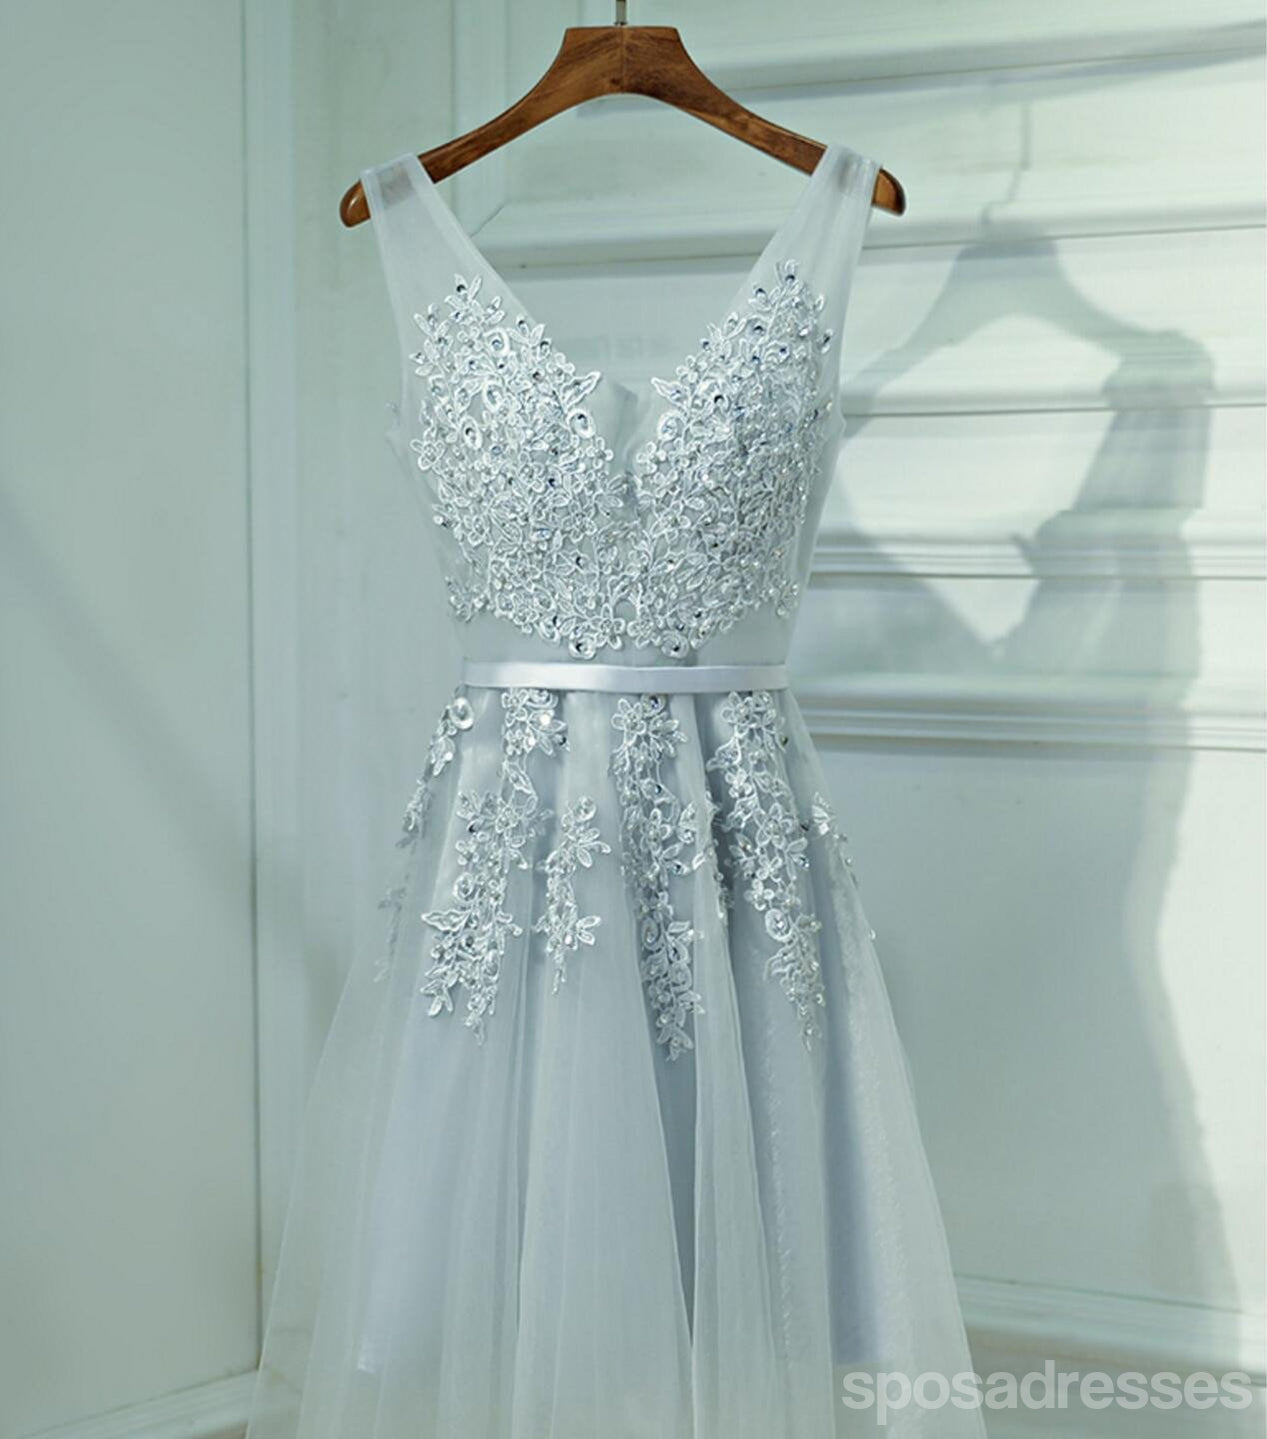 Cute Gray Lace v Neckline Short Homecoming Prom Dresses ...